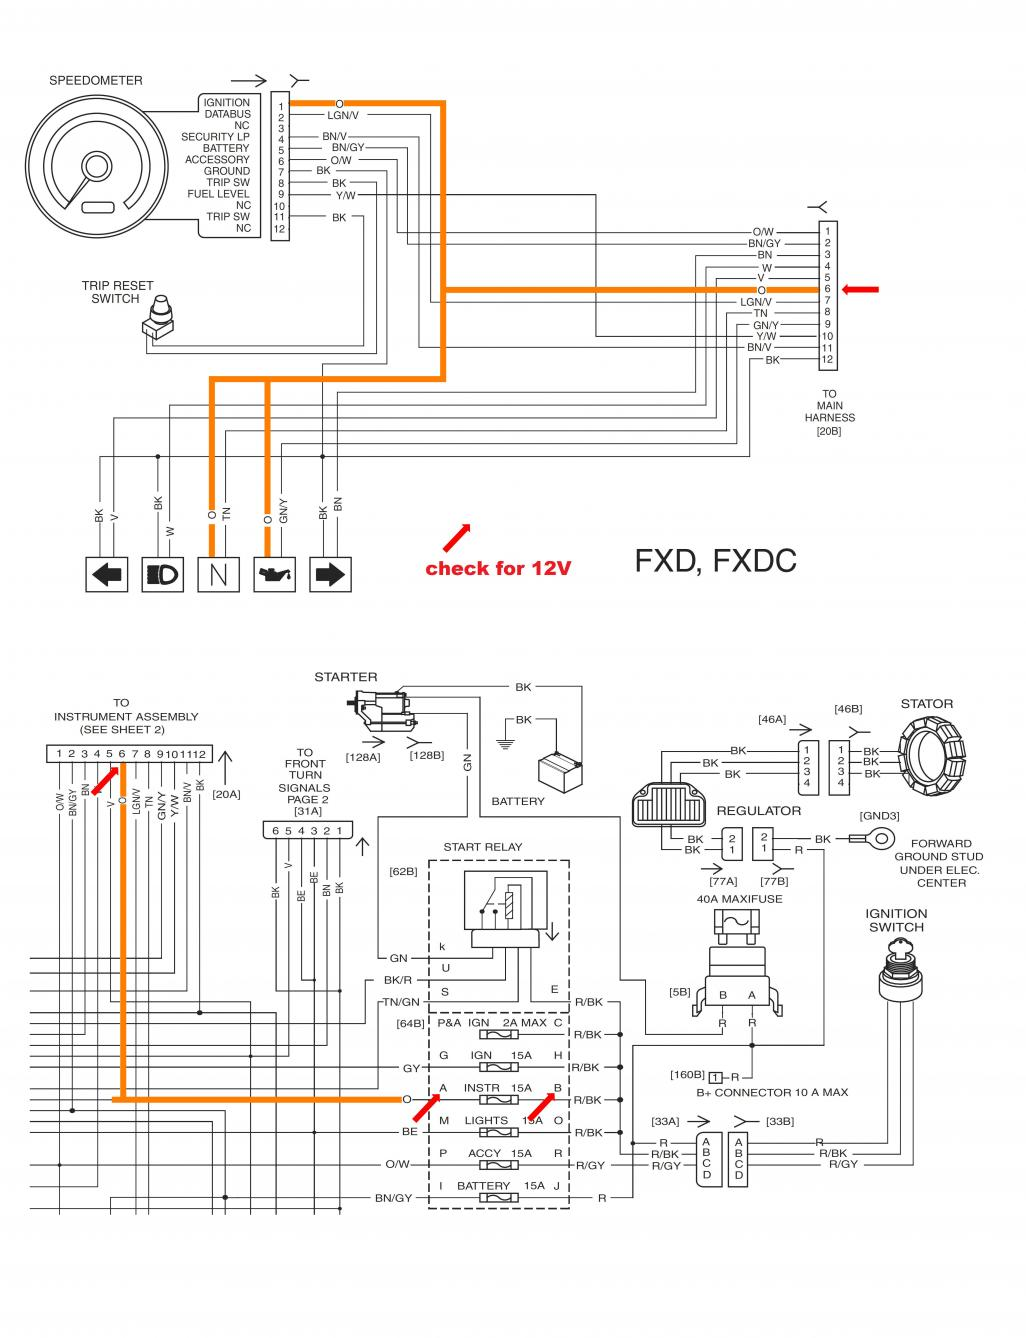 Harley Dyna Super Glide Wiring Diagrams | Wiring Liry on 1999 softail wiring diagrams, harley custom wiring diagrams, dyna shift minder wiring diagrams,